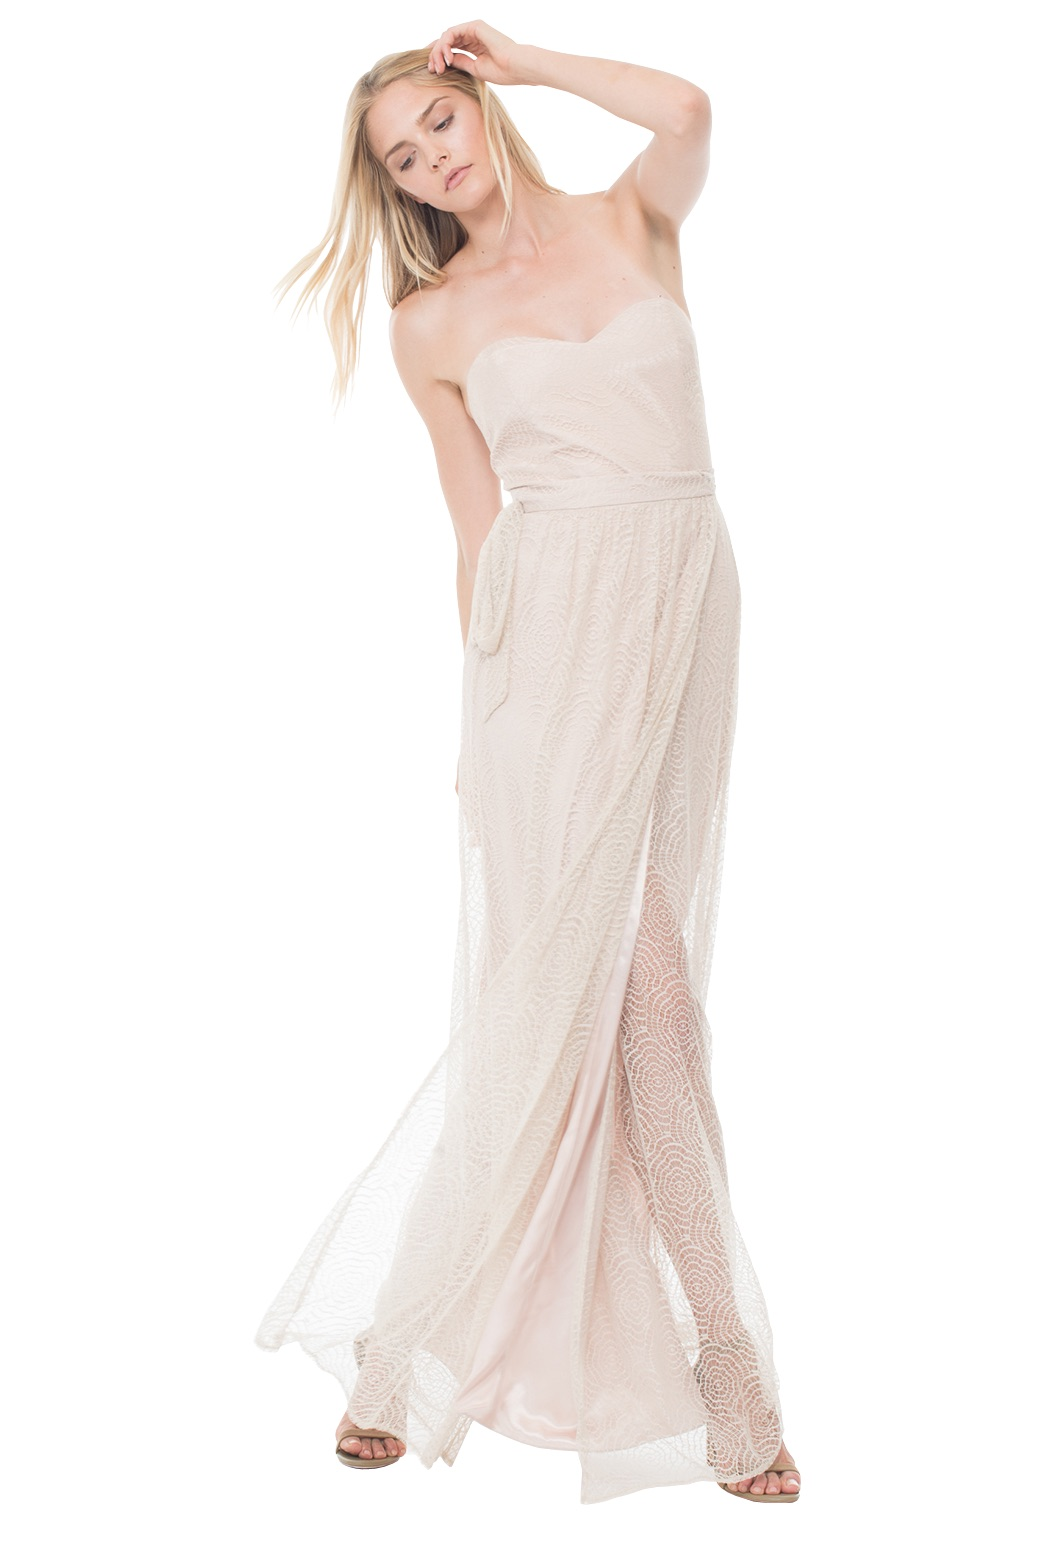 ivory-and-beau-bridal-boutique-savannah-wedding-dress-savannah-wedding-gown-savannah-bridal-boutique-savannah-bridal-shop-savannah-wedding-planner-rodan-and-fields-joanna-august-bridesmaids-whitney-long-lace.jpg